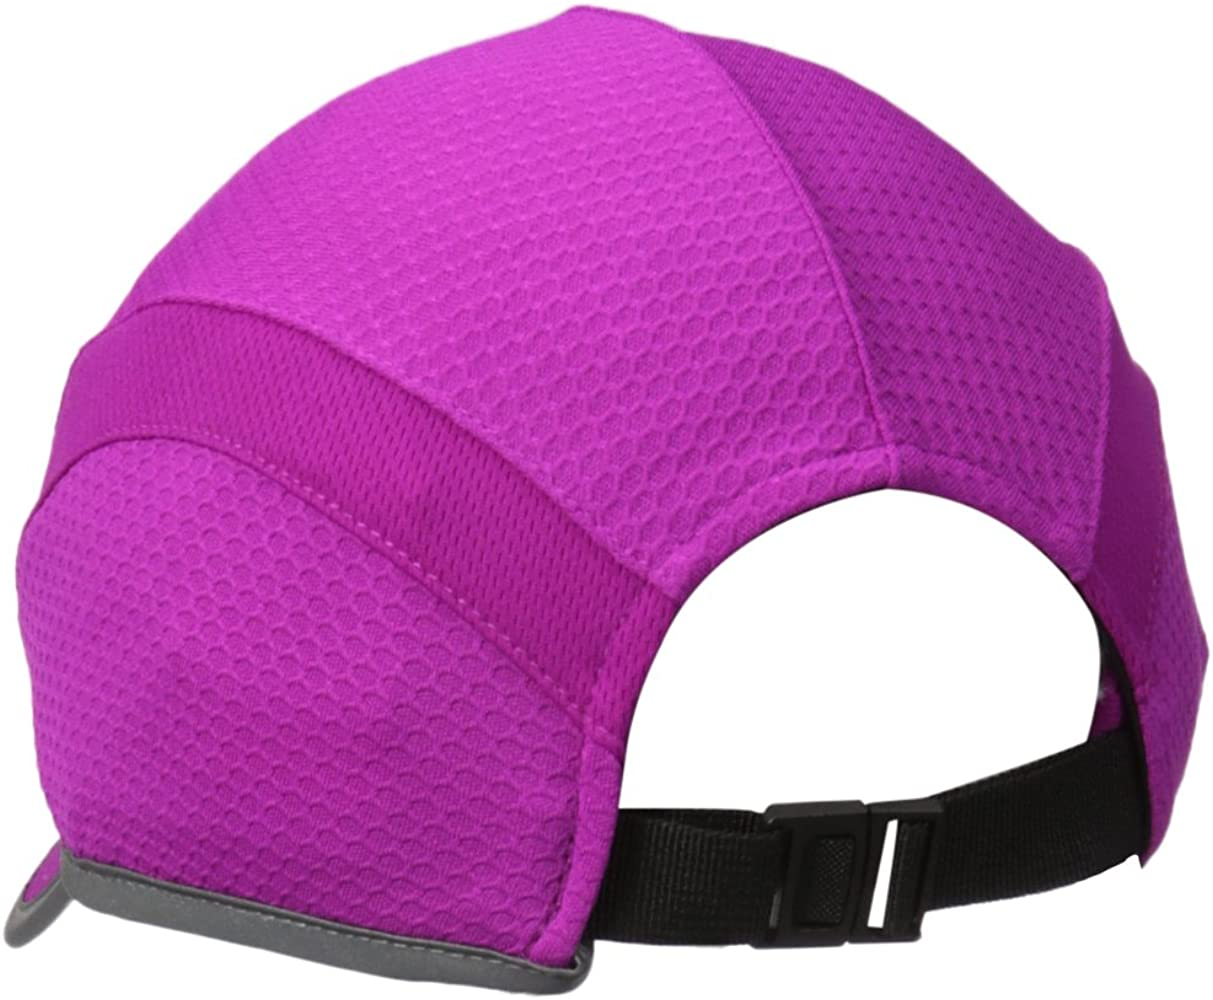 New Balance Performance Gorra, Hombre, Fucsia, Talla Única: Amazon ...